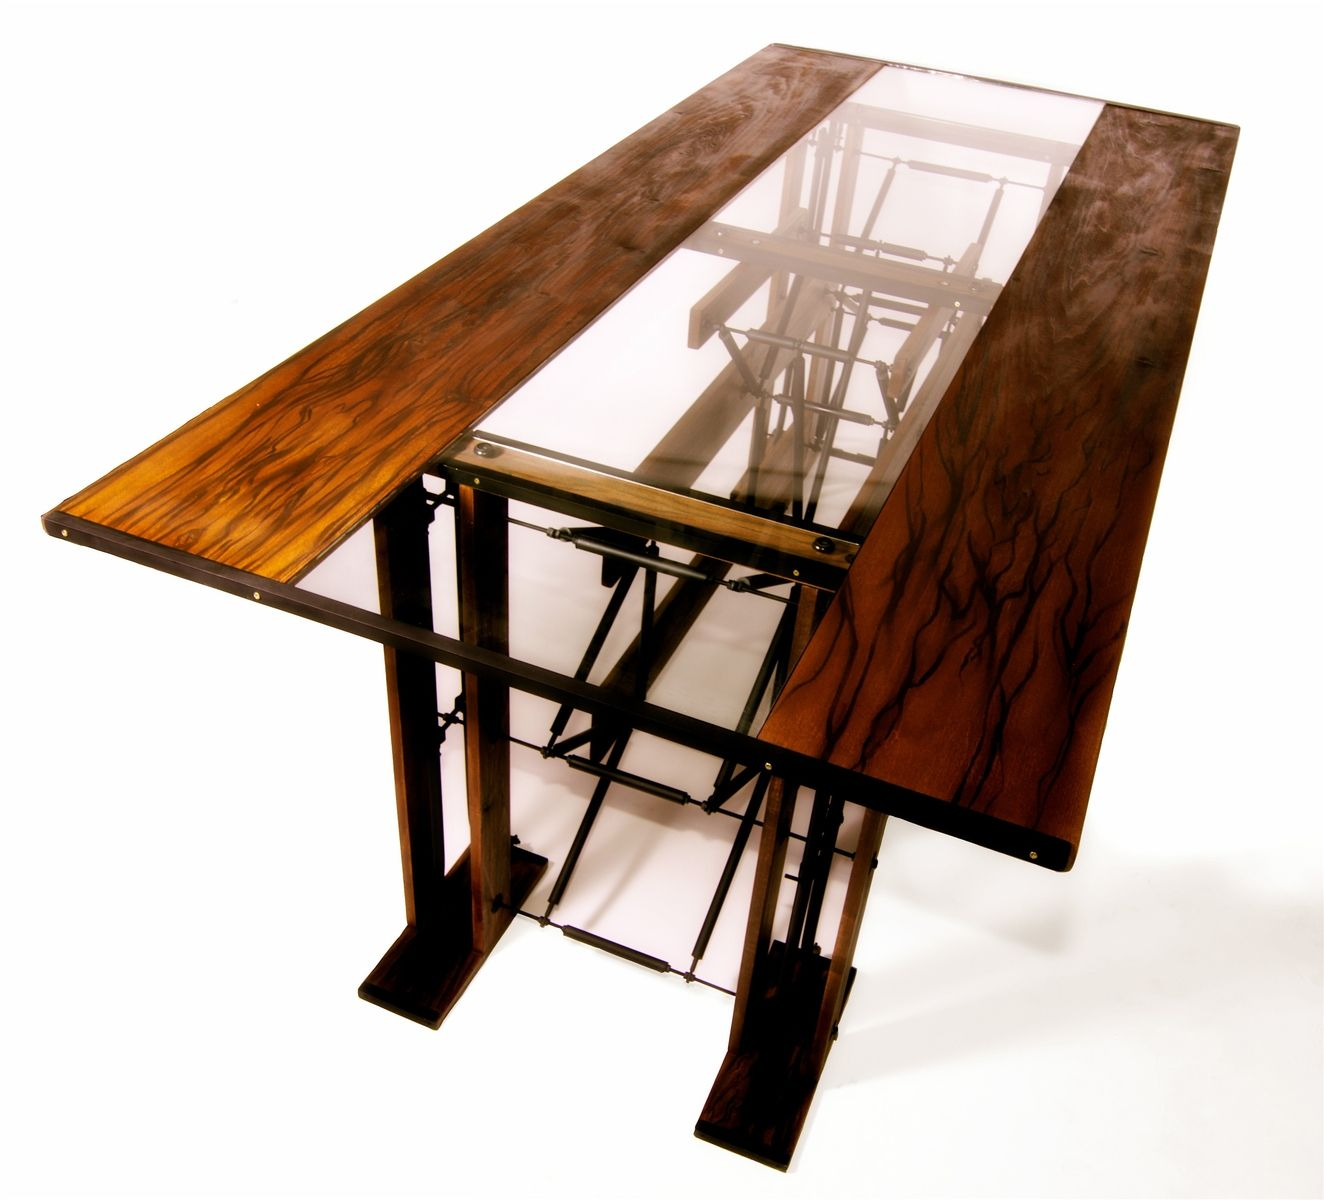 Hand Made Custom Contemporary Industrial Eclectic Dining Table By Interactive Dezigns